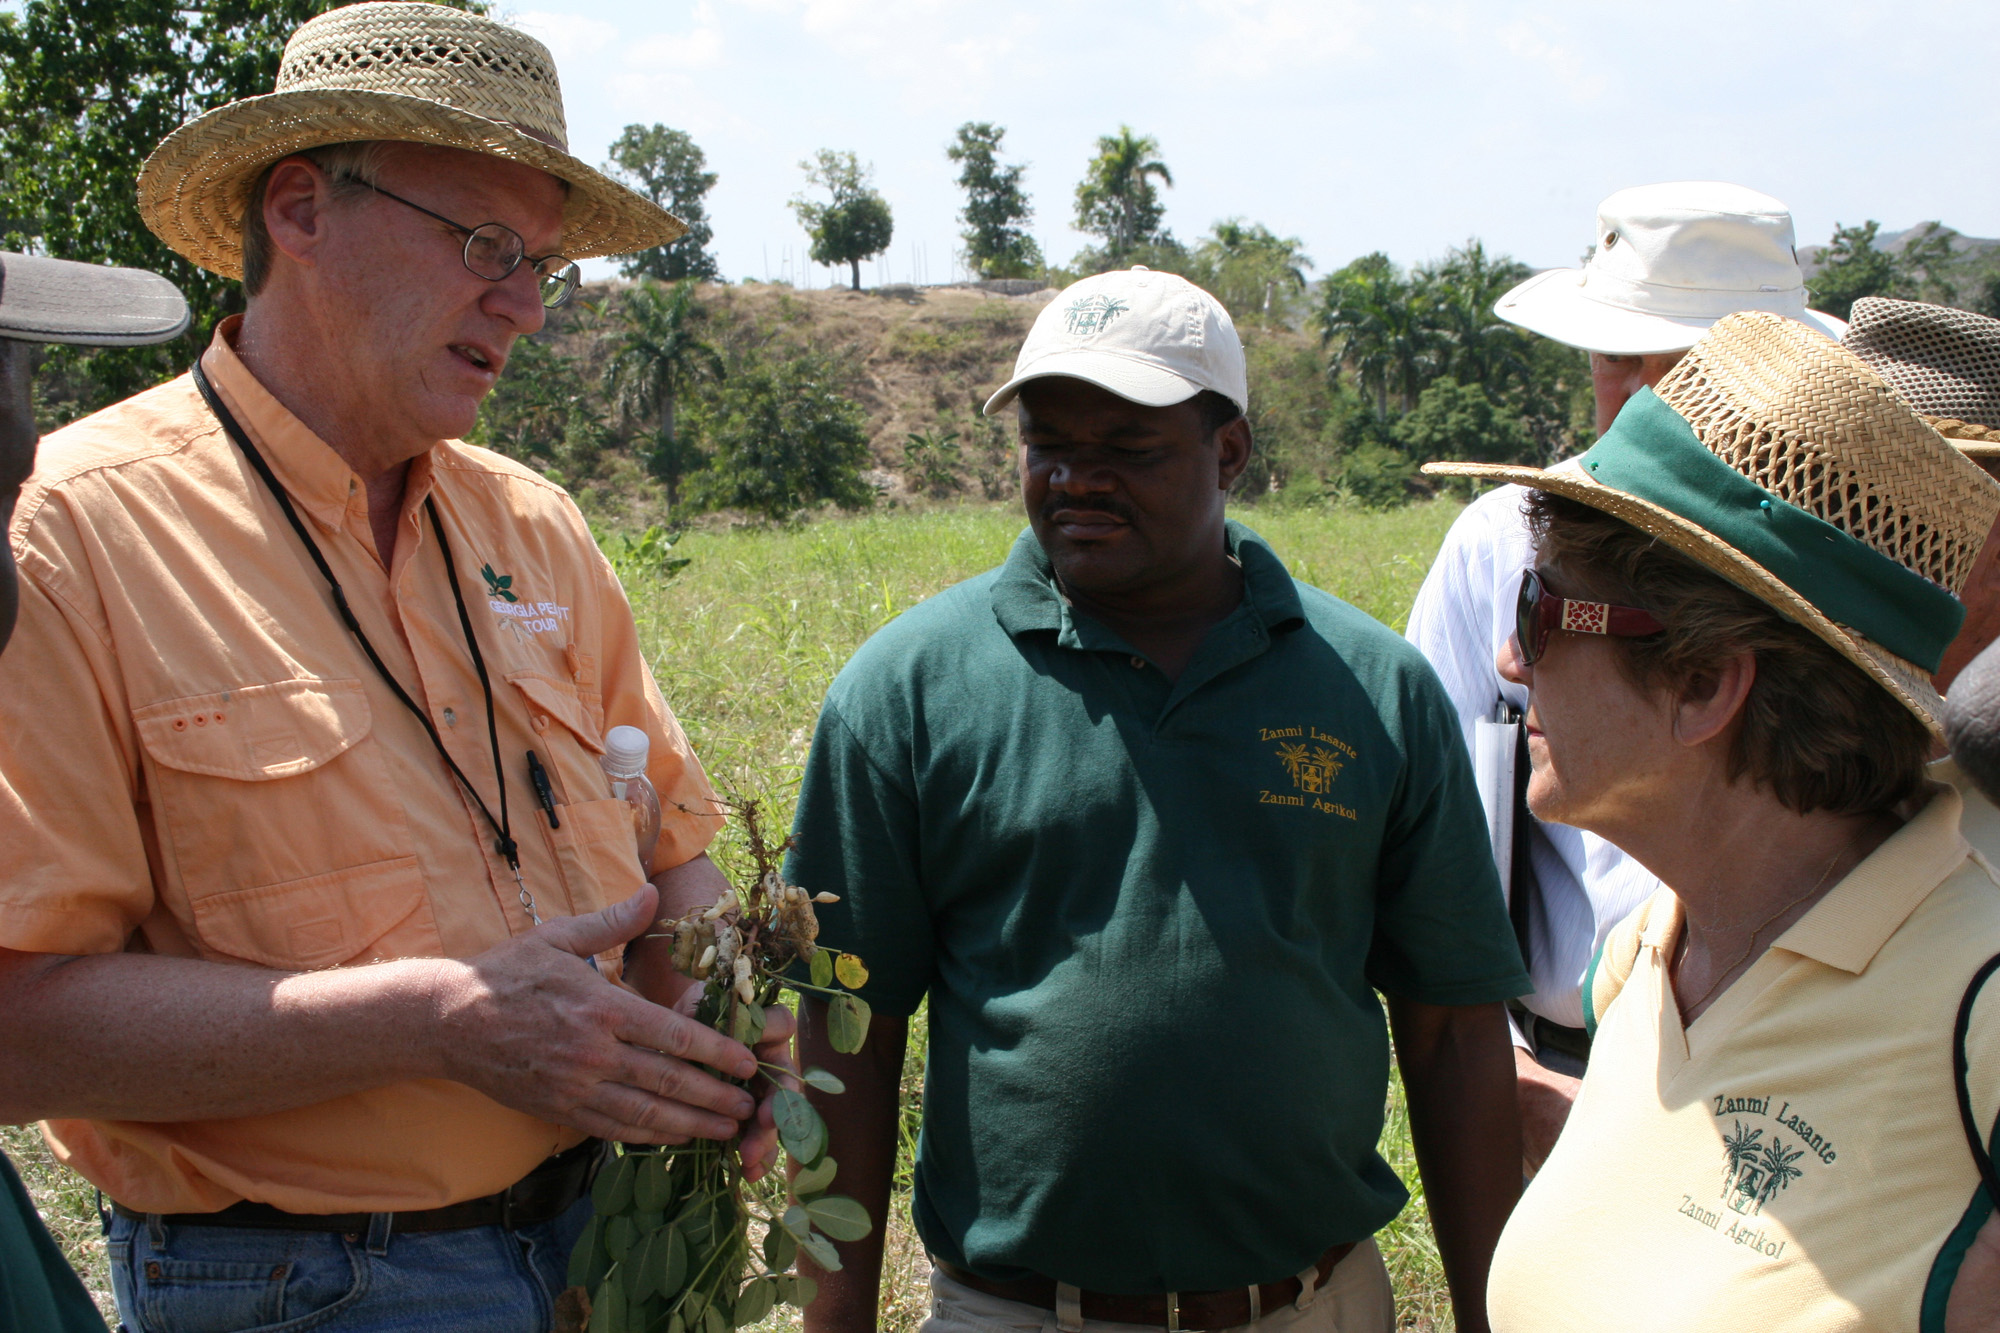 UGA Cooperative Extension assistant dean Steve Brown (left) explains peanut diseases to Zanmi Agrikol agronomist Fereste Sonnius (center) and director Gillaine Warne (right) at one of the organization's farms March 17.